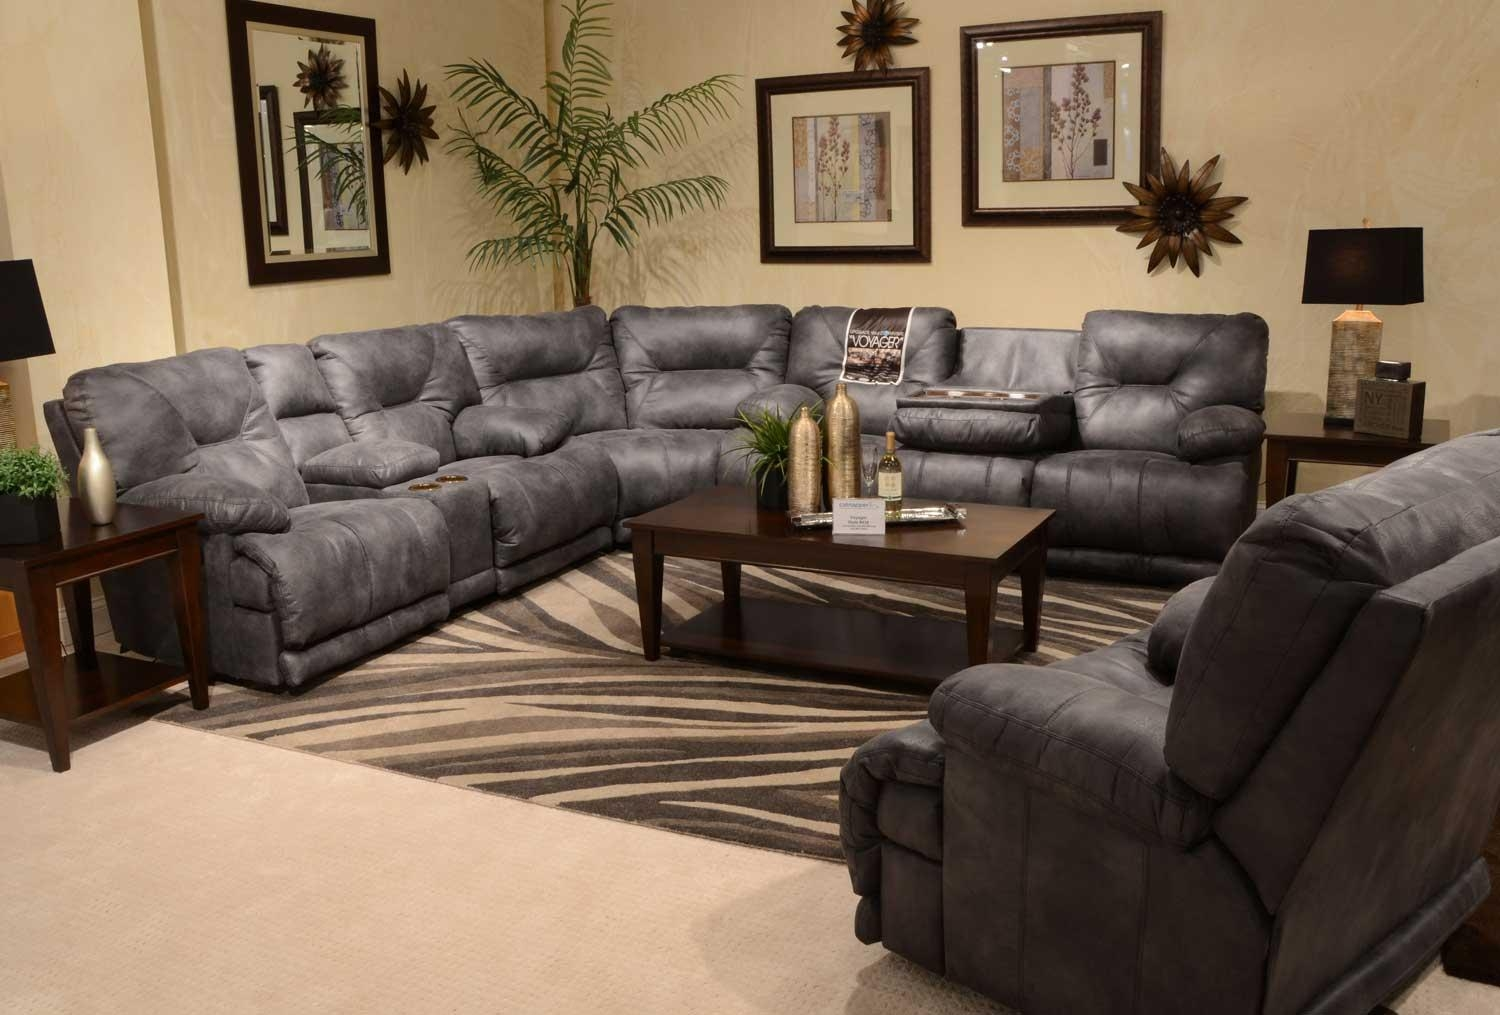 Sofas Center : Magnificent Recliningfa With Console Images Concept Within Sofas With Consoles (Image 11 of 20)